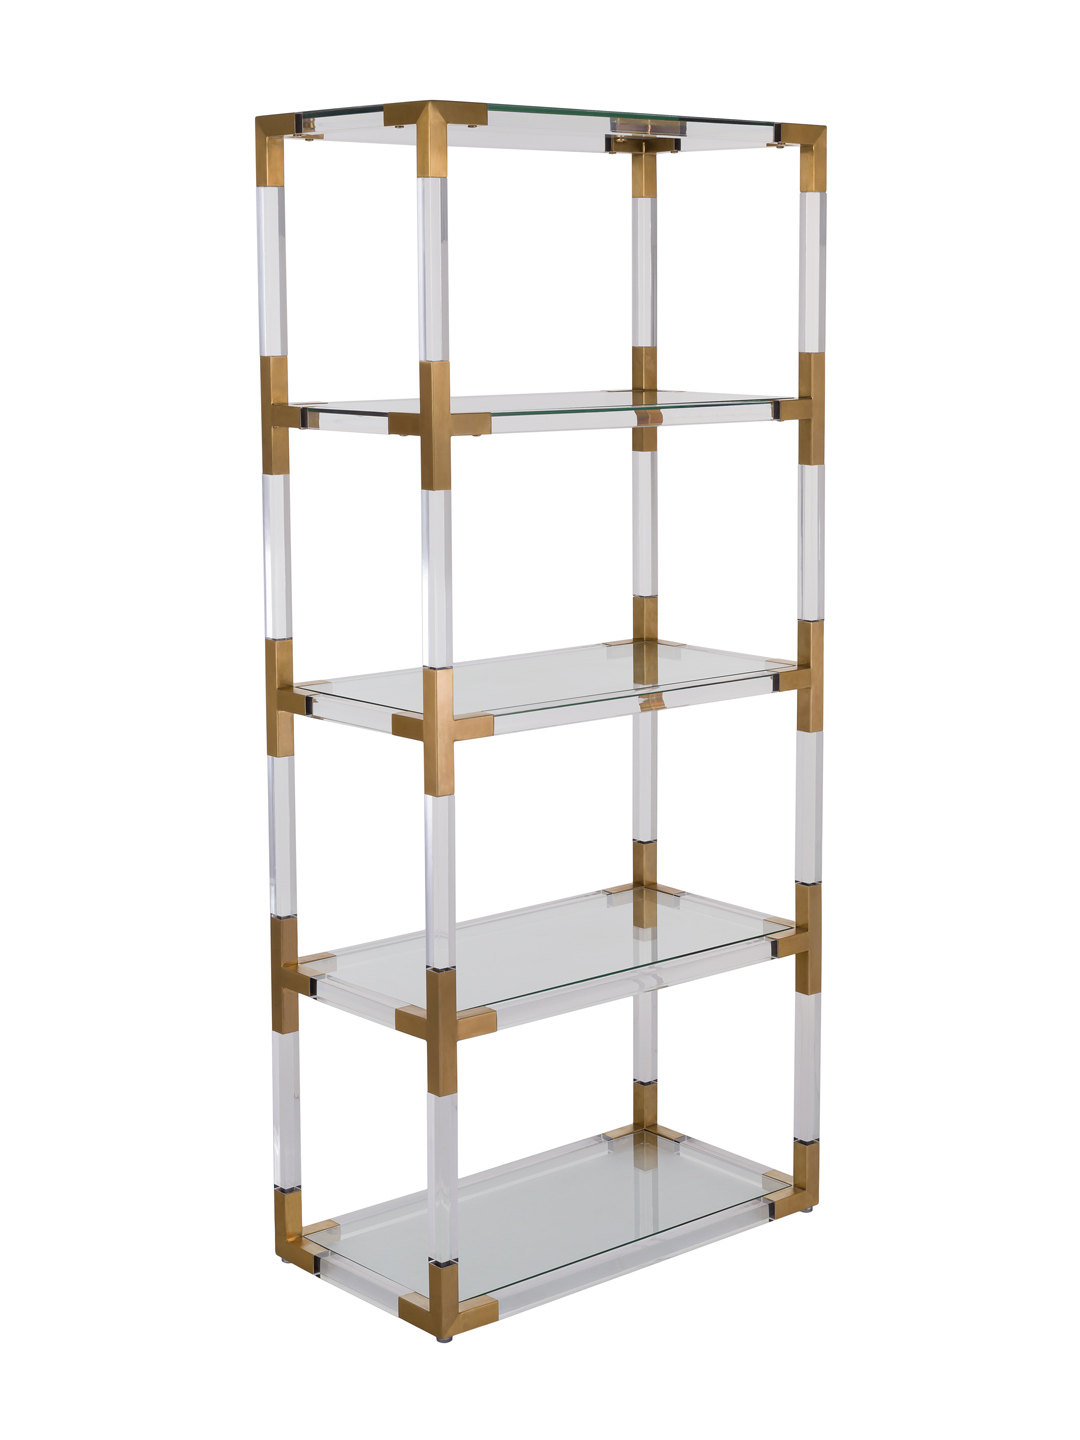 gilt hayley by safavieh bookcase shelving office living home decor